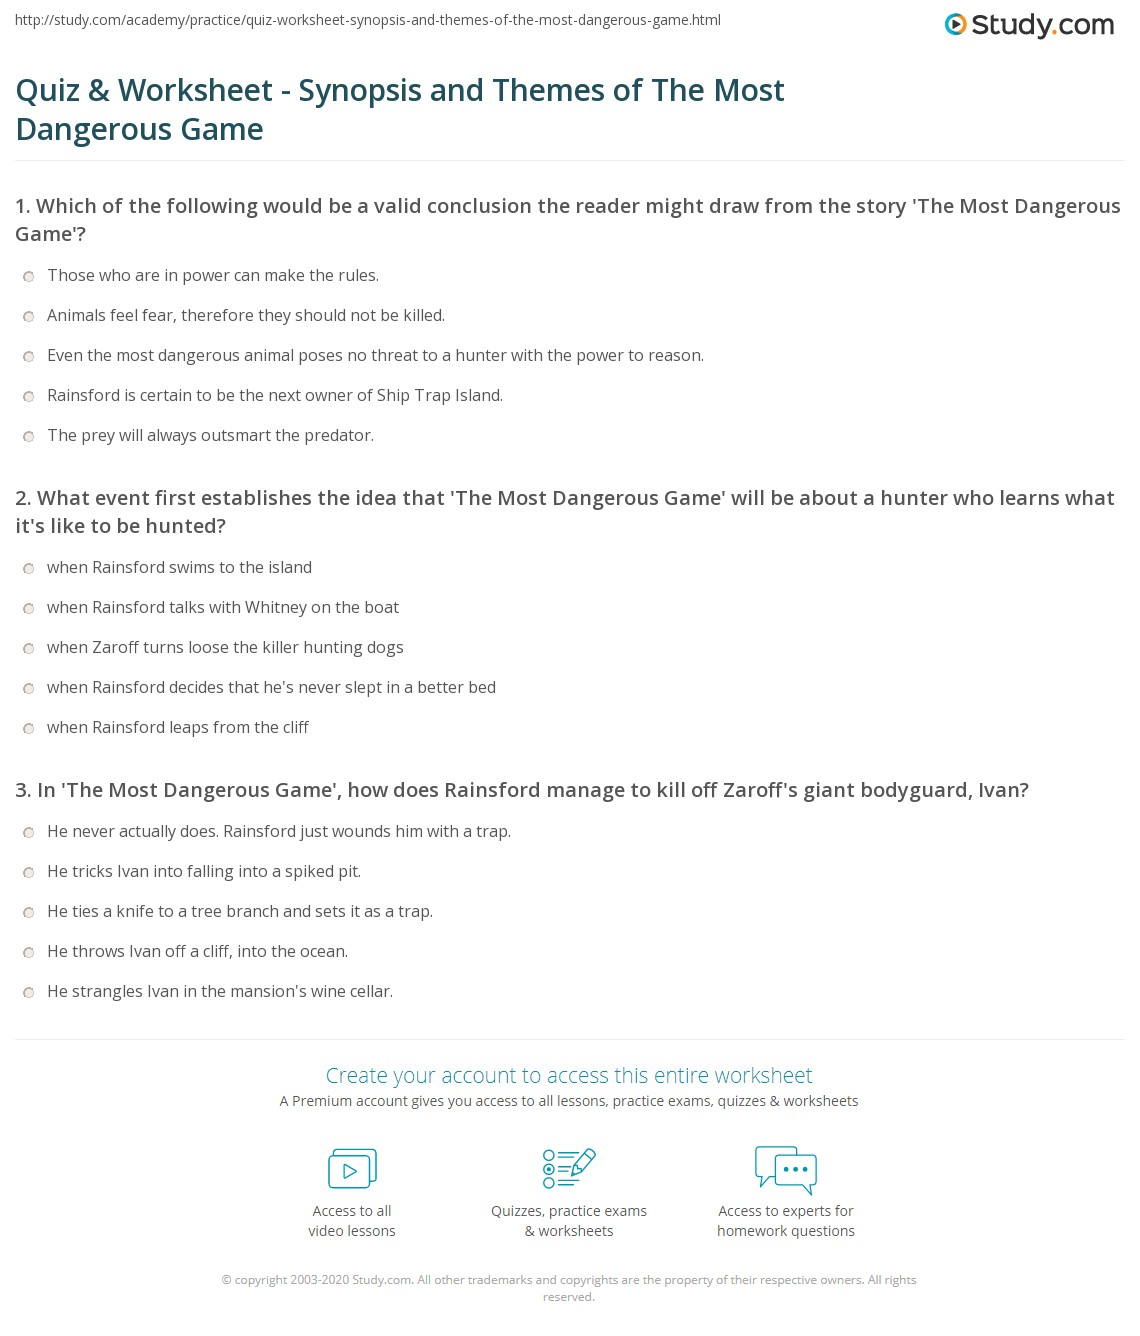 quiz worksheet synopsis and themes of the most dangerous game print the most dangerous game summary and themes worksheet